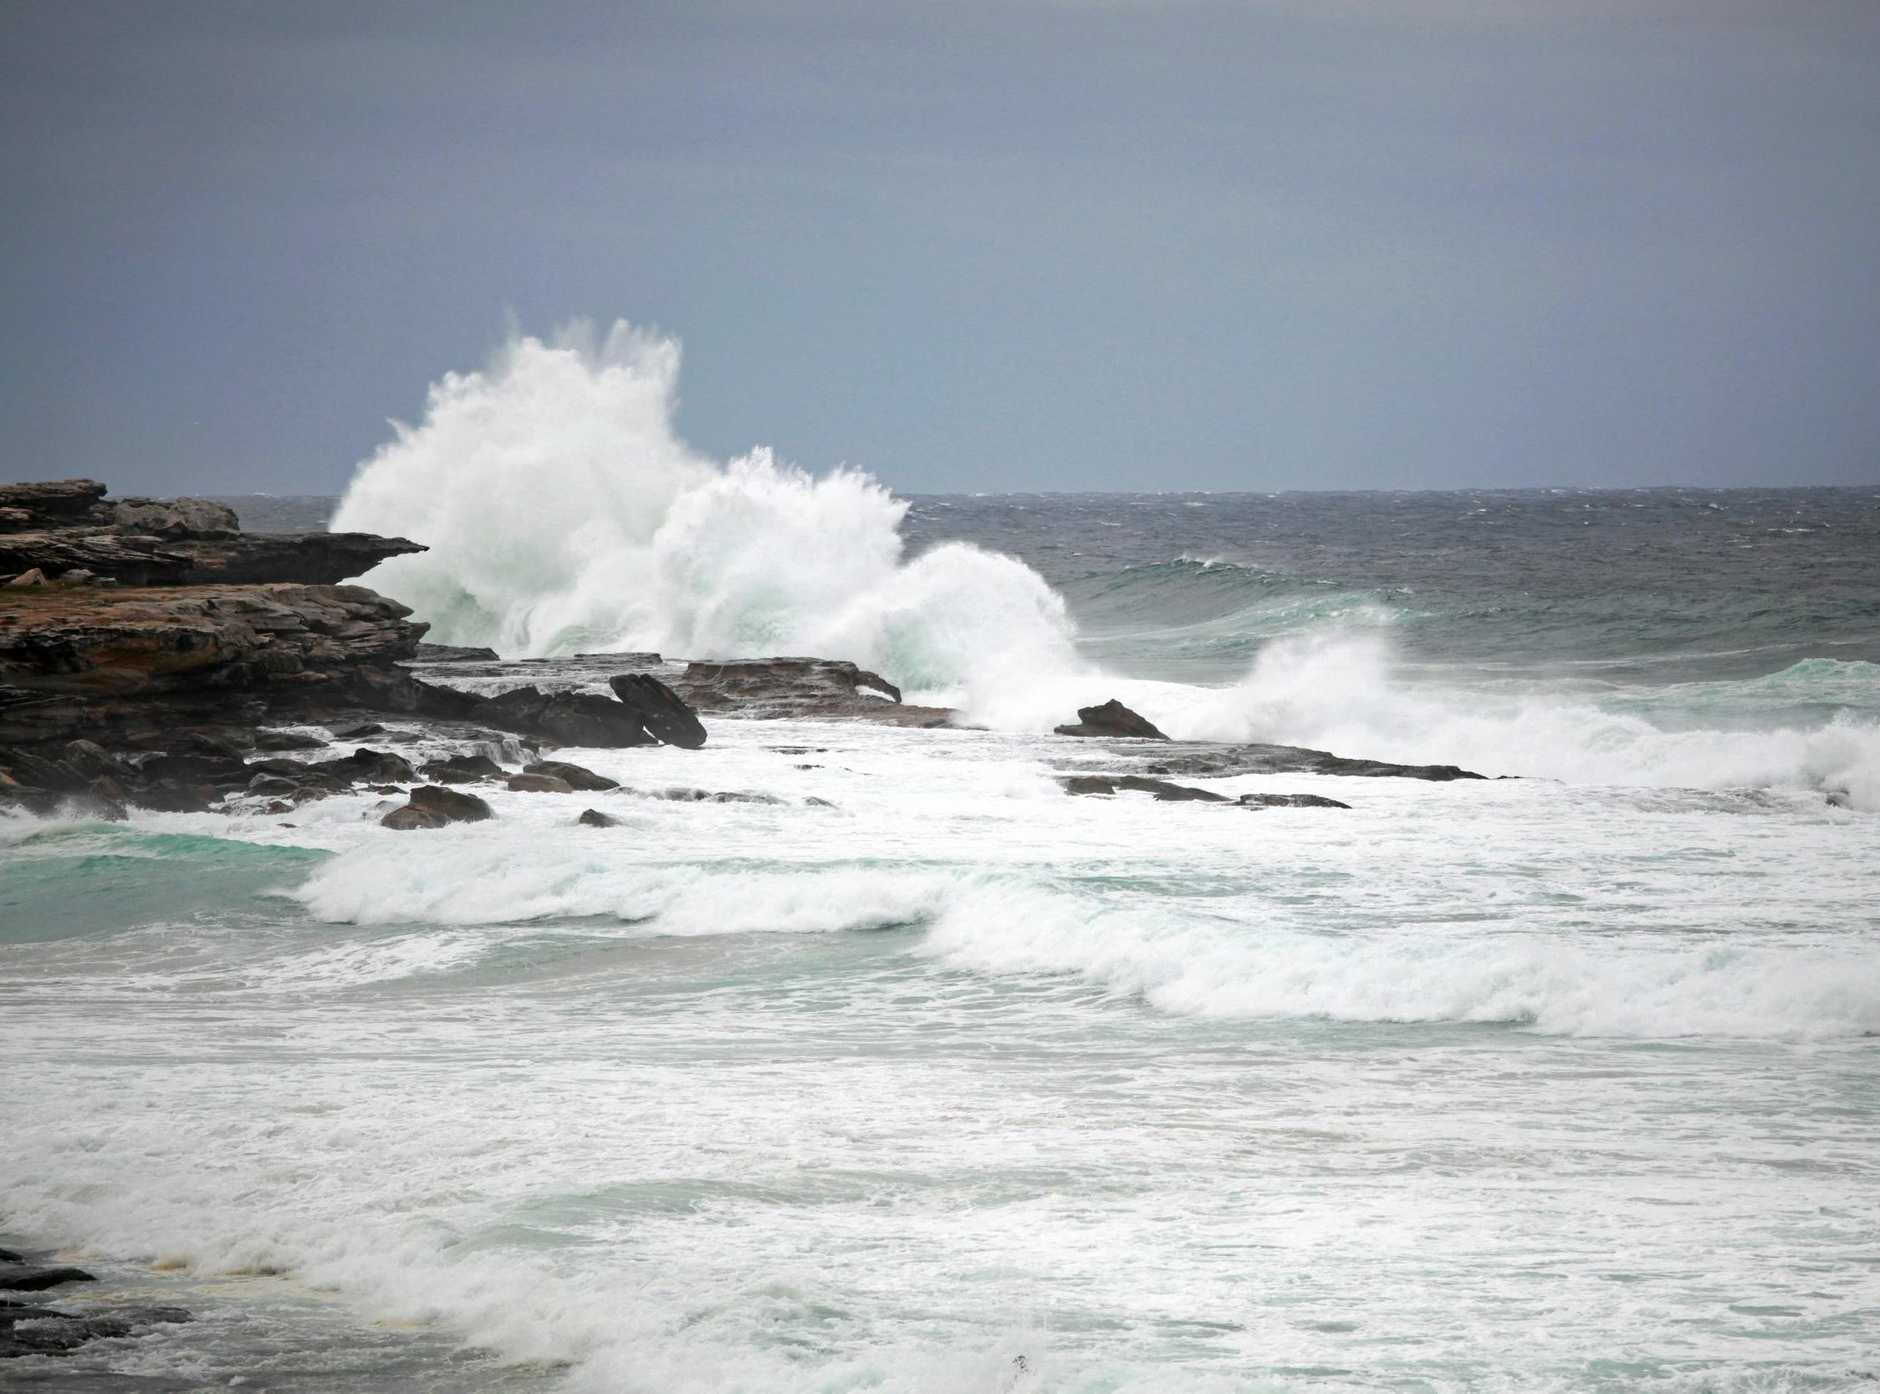 The Bureau of Meteorology has issued a dangerous surf warning for much of the NSW coast for the next few days.